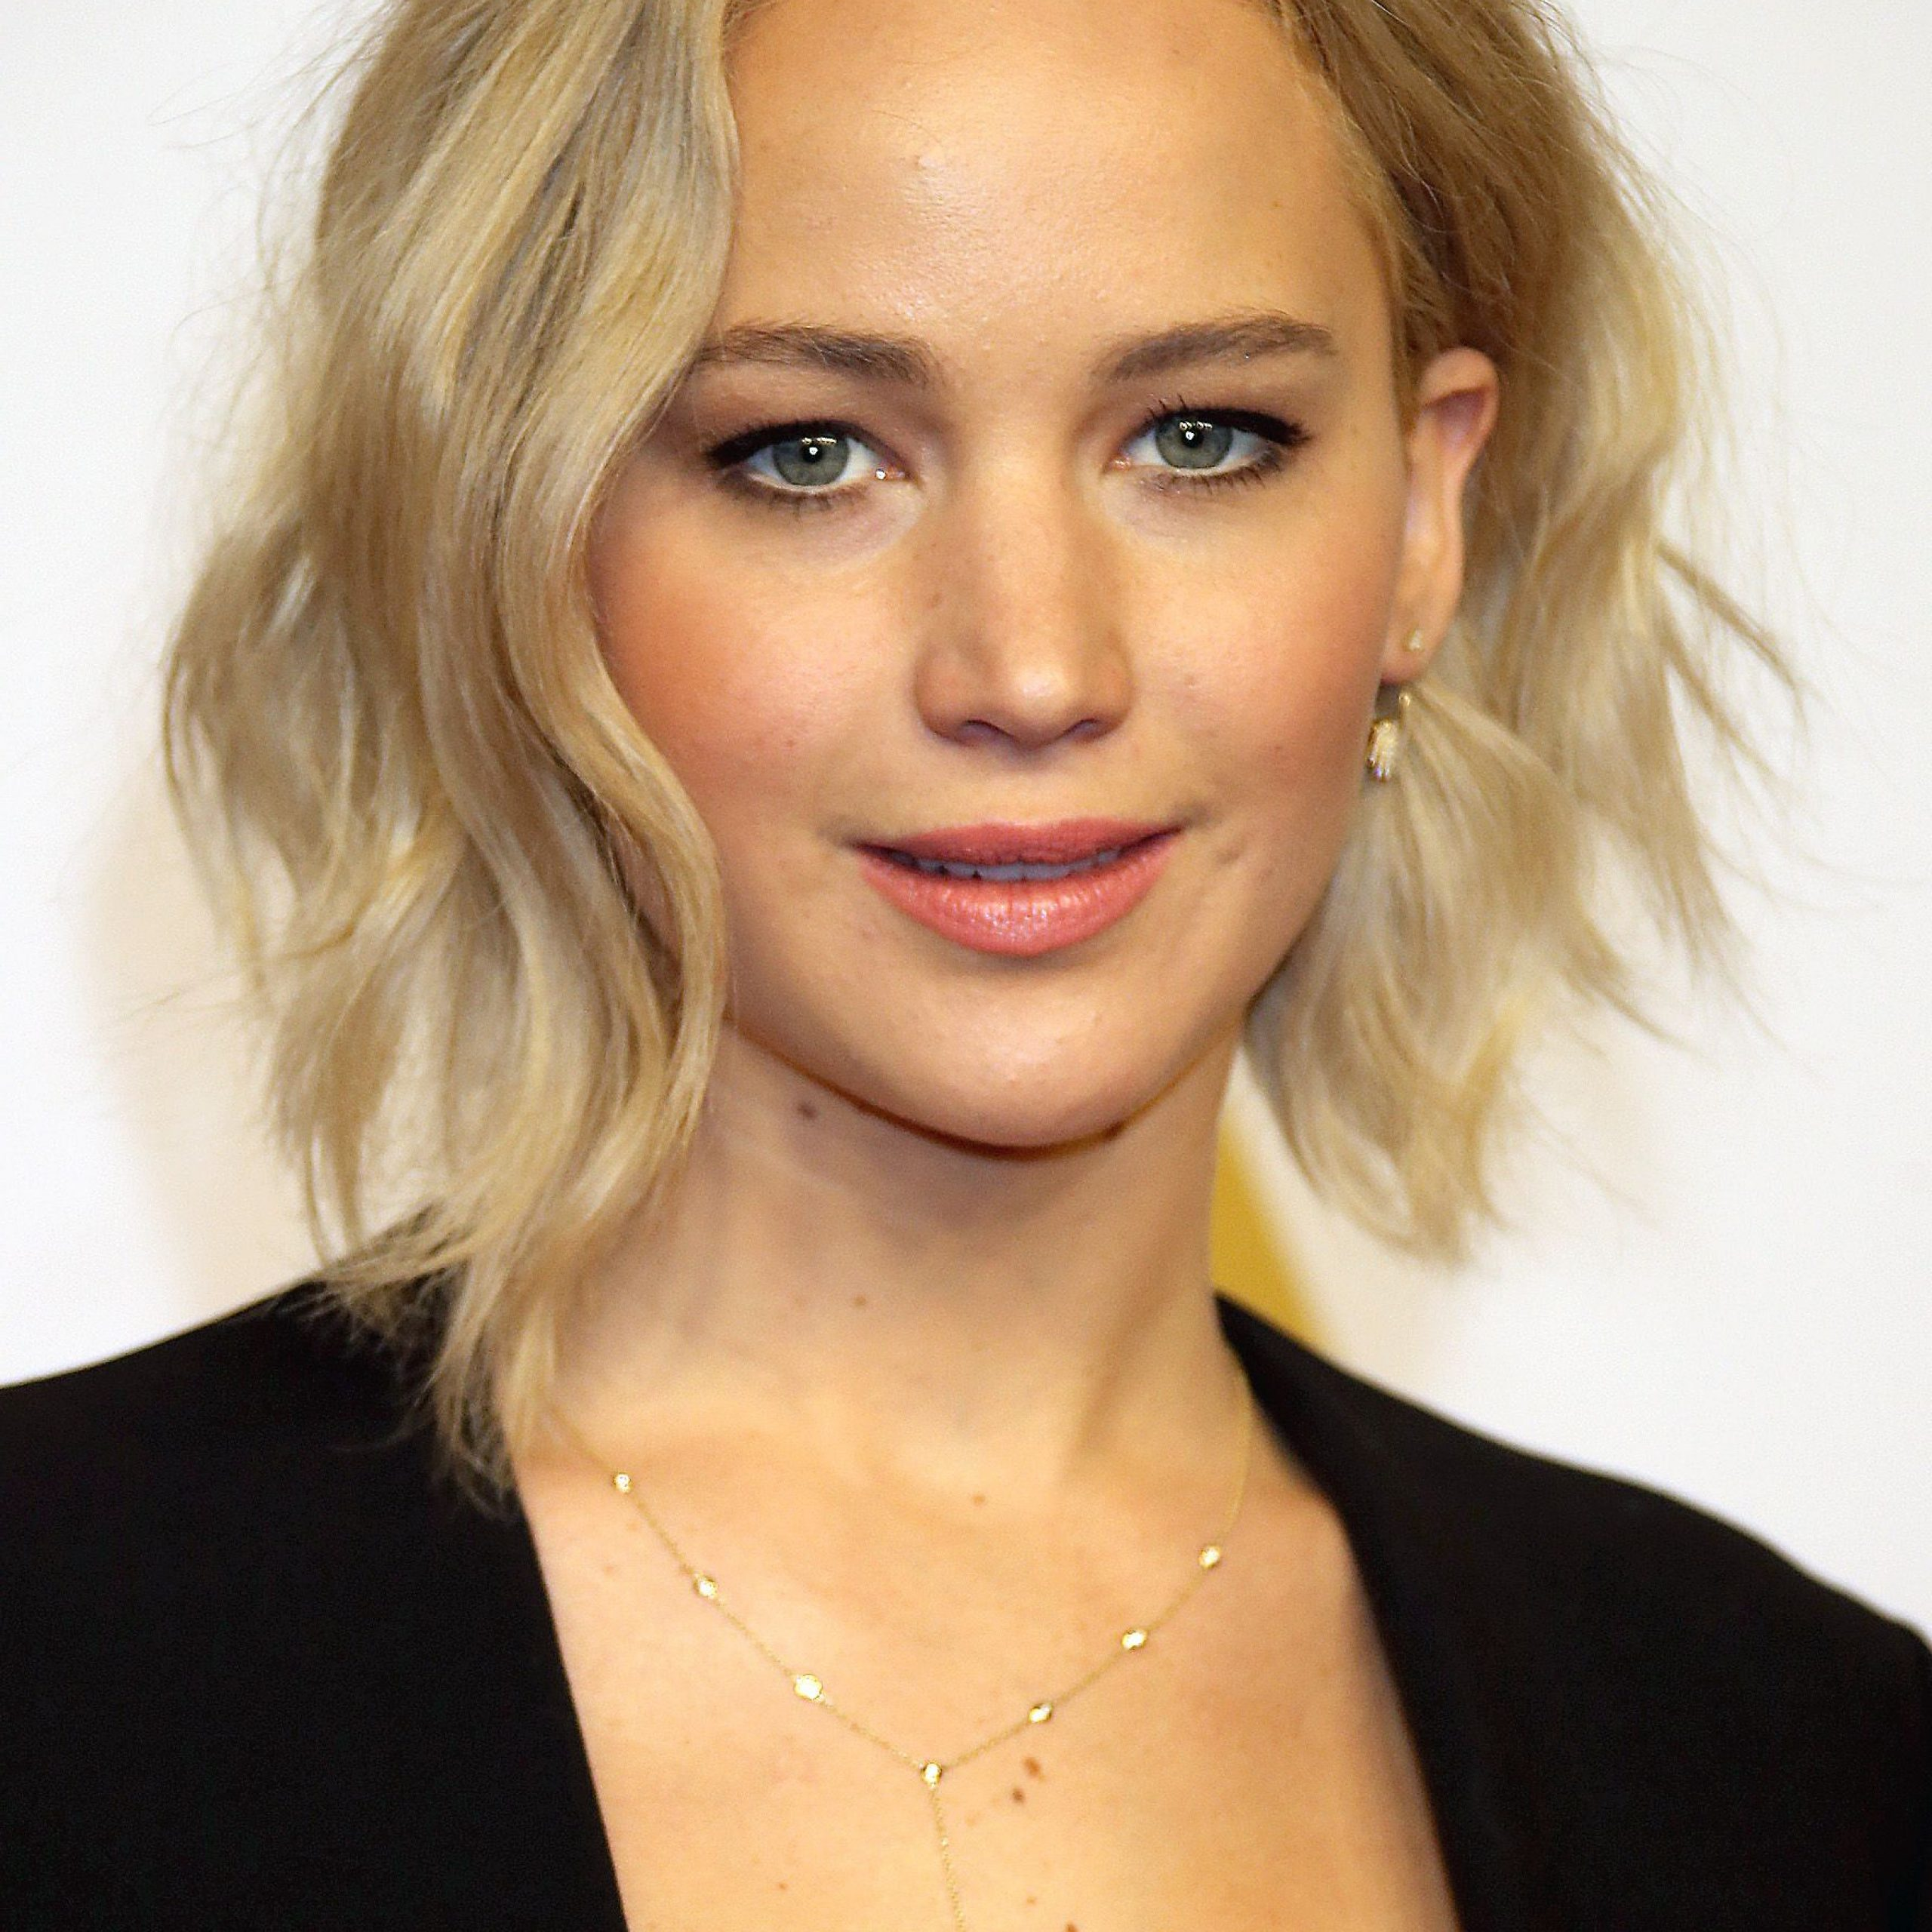 55+ Cute Bob Haircuts And Hairstyles 2019 – Long, Short, And With Simple Side Parted Jaw Length Bob Hairstyles (View 11 of 20)